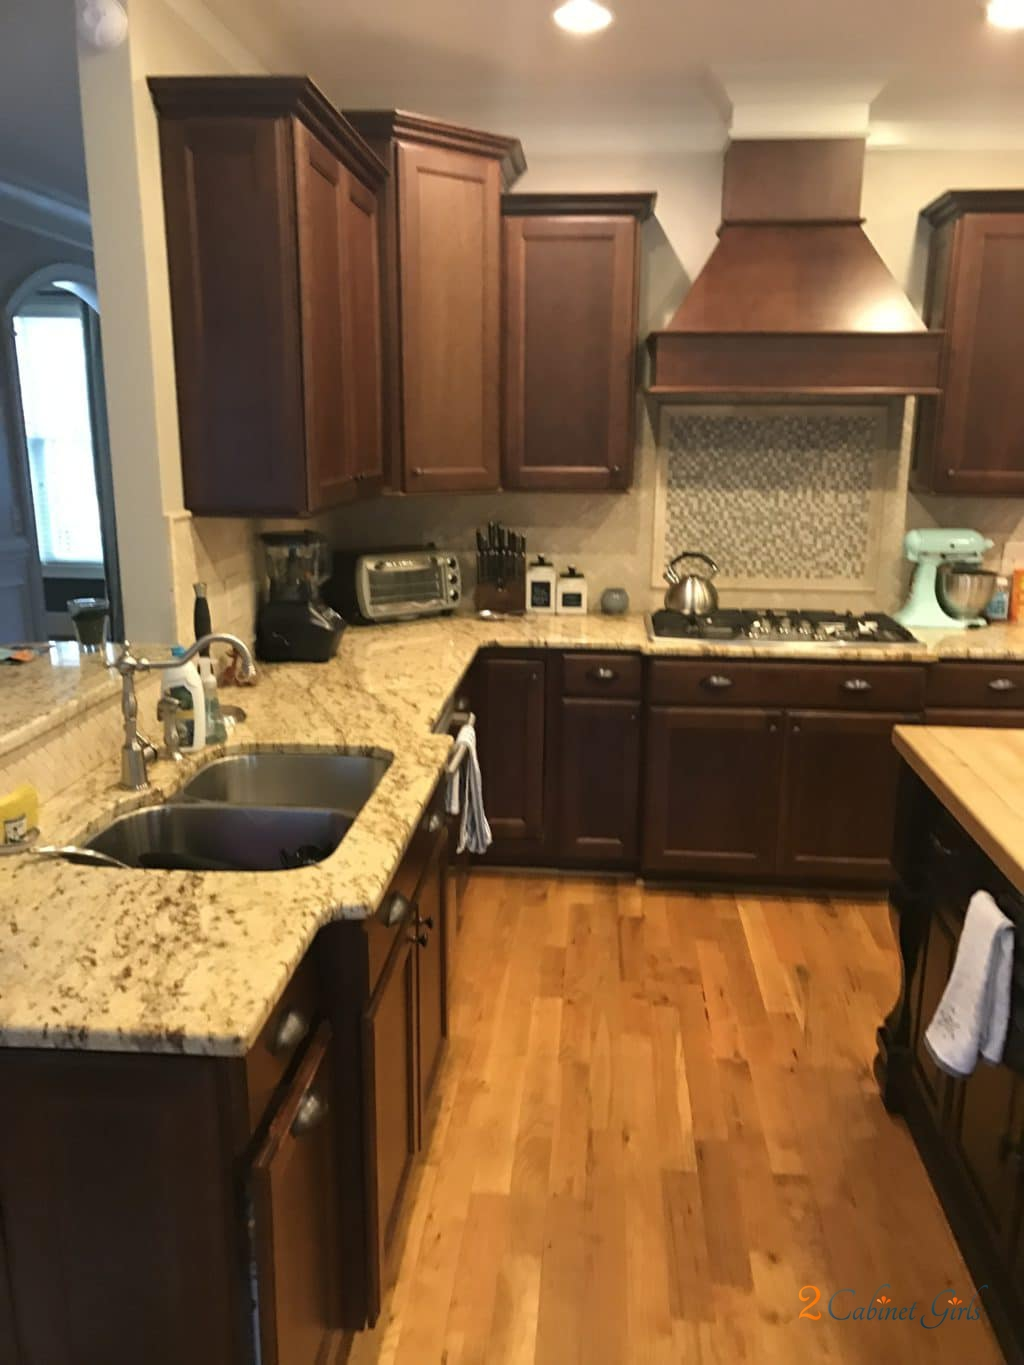 Nacre Kitchen with Tony Taupe Glaze  2 Cabinet Girls